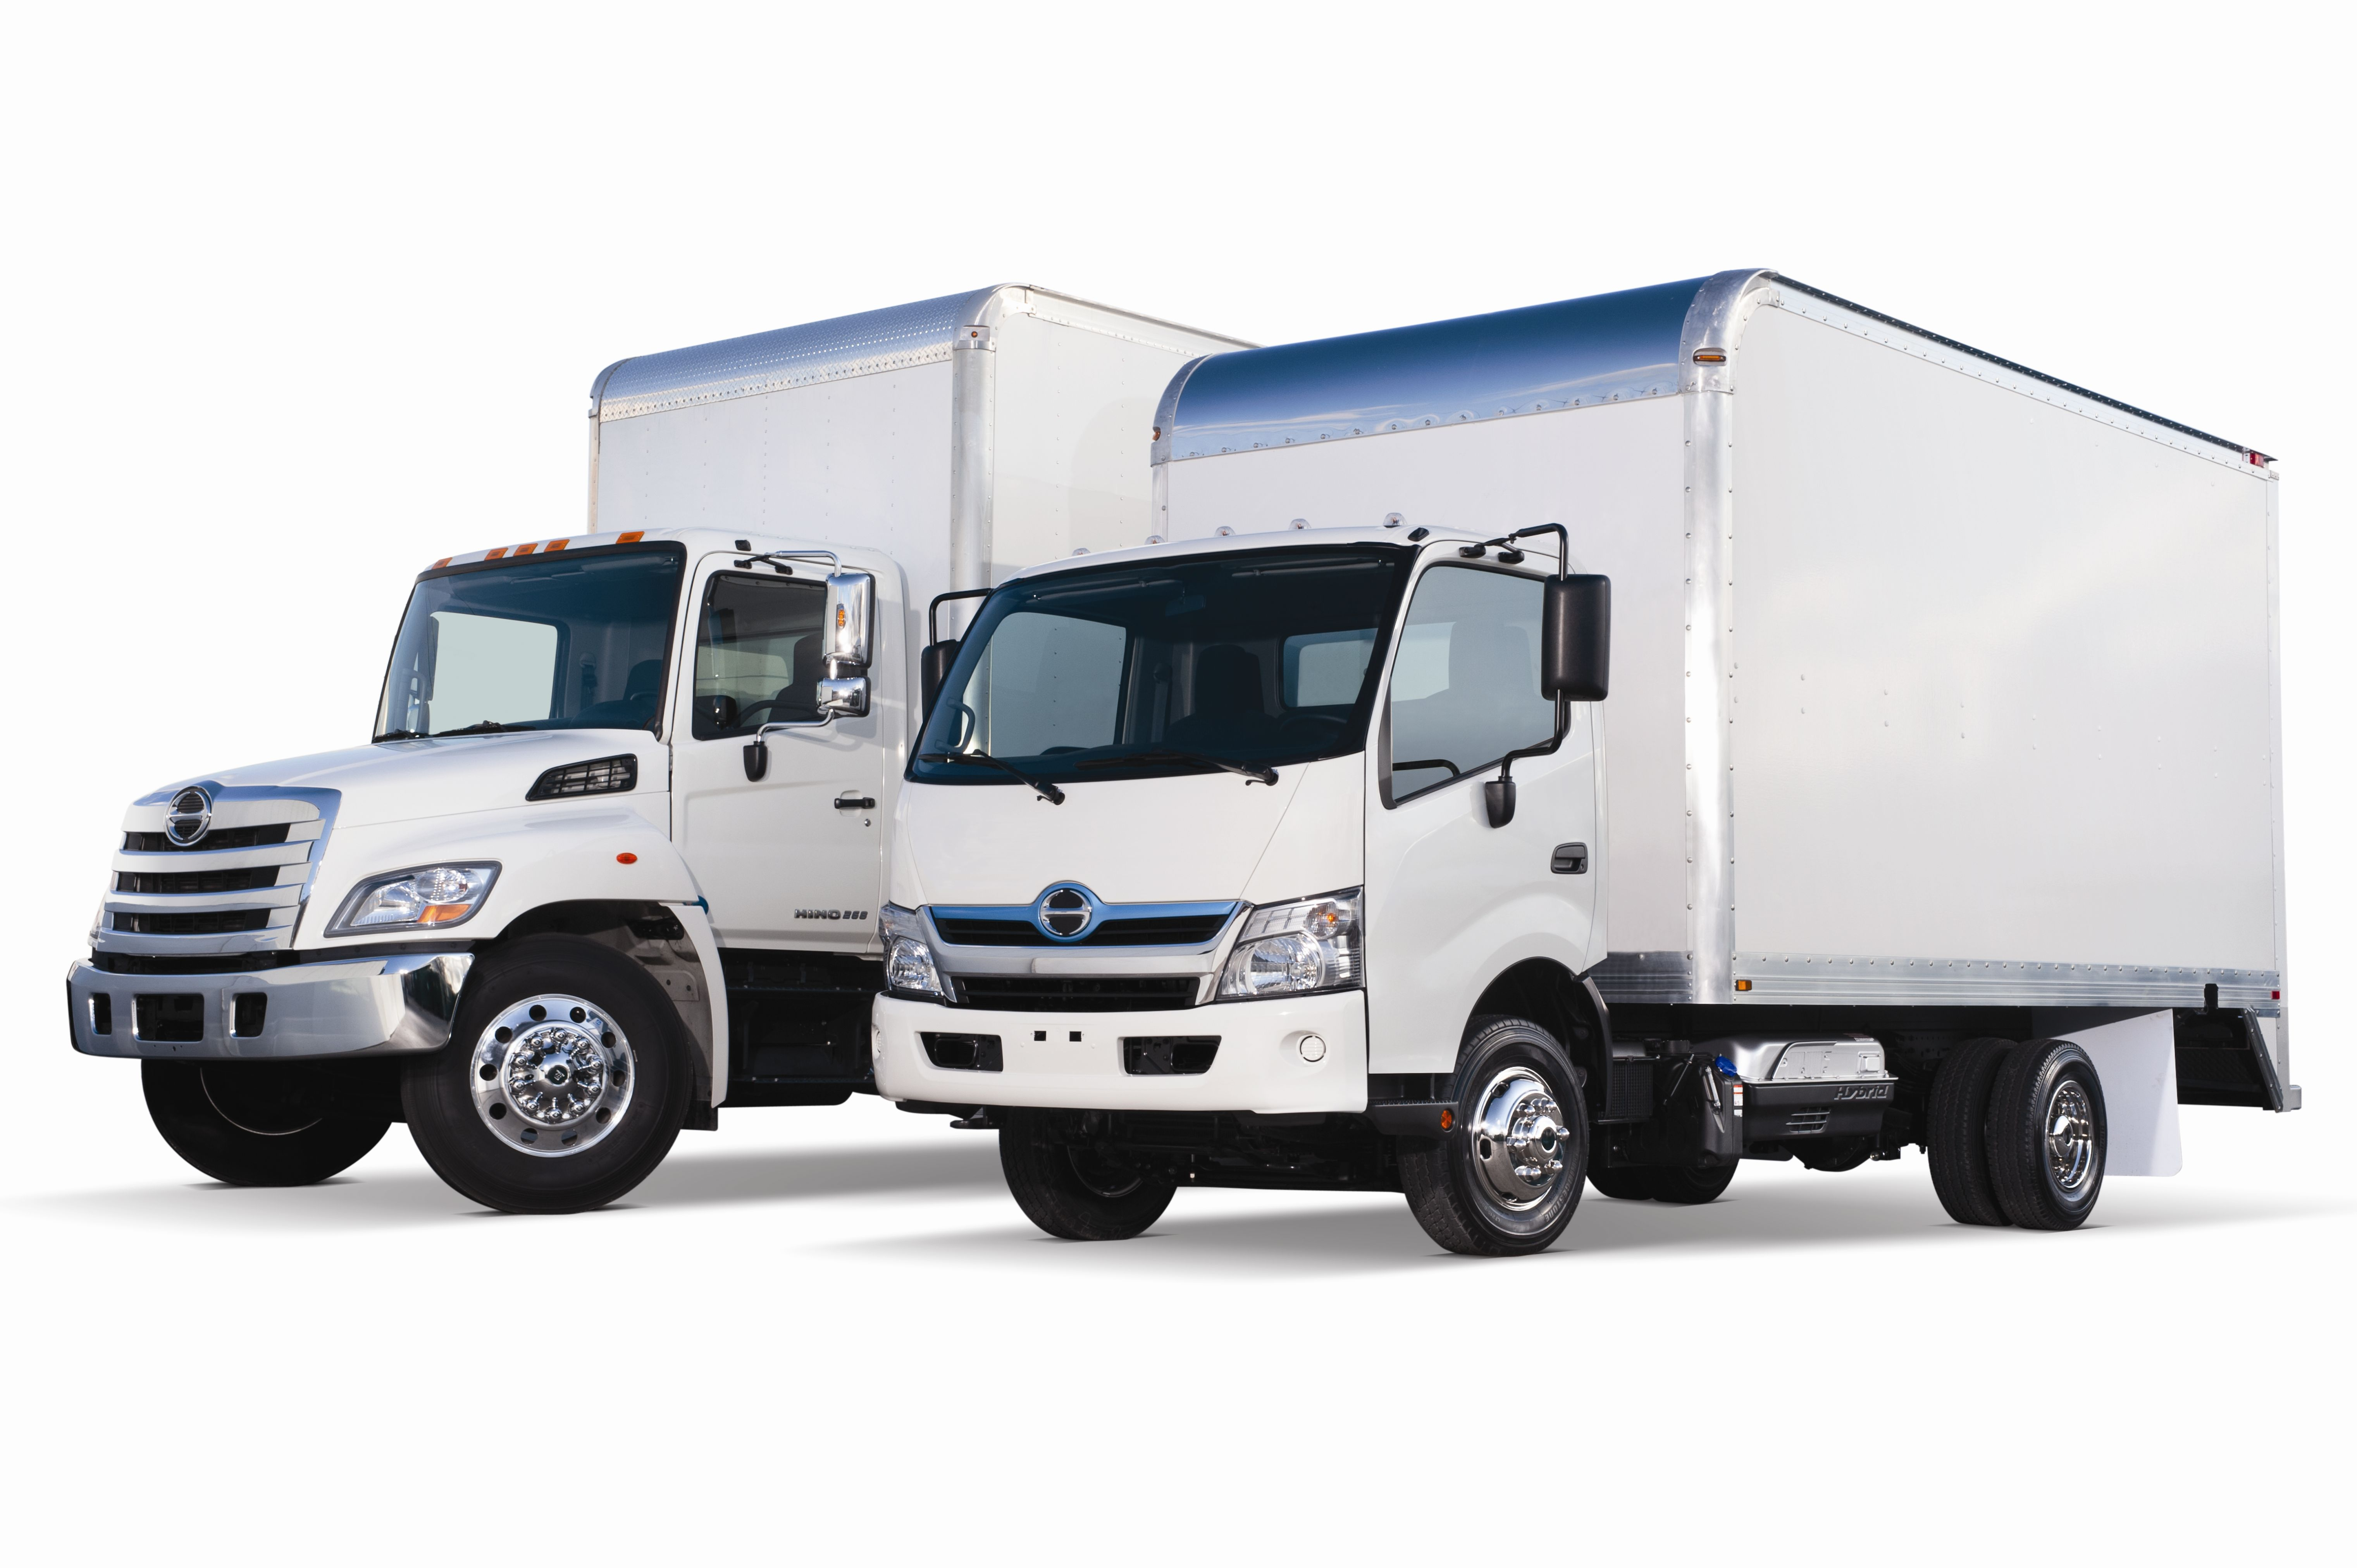 Hino Targets Expanded Market Share with New Class 4-5 COEs